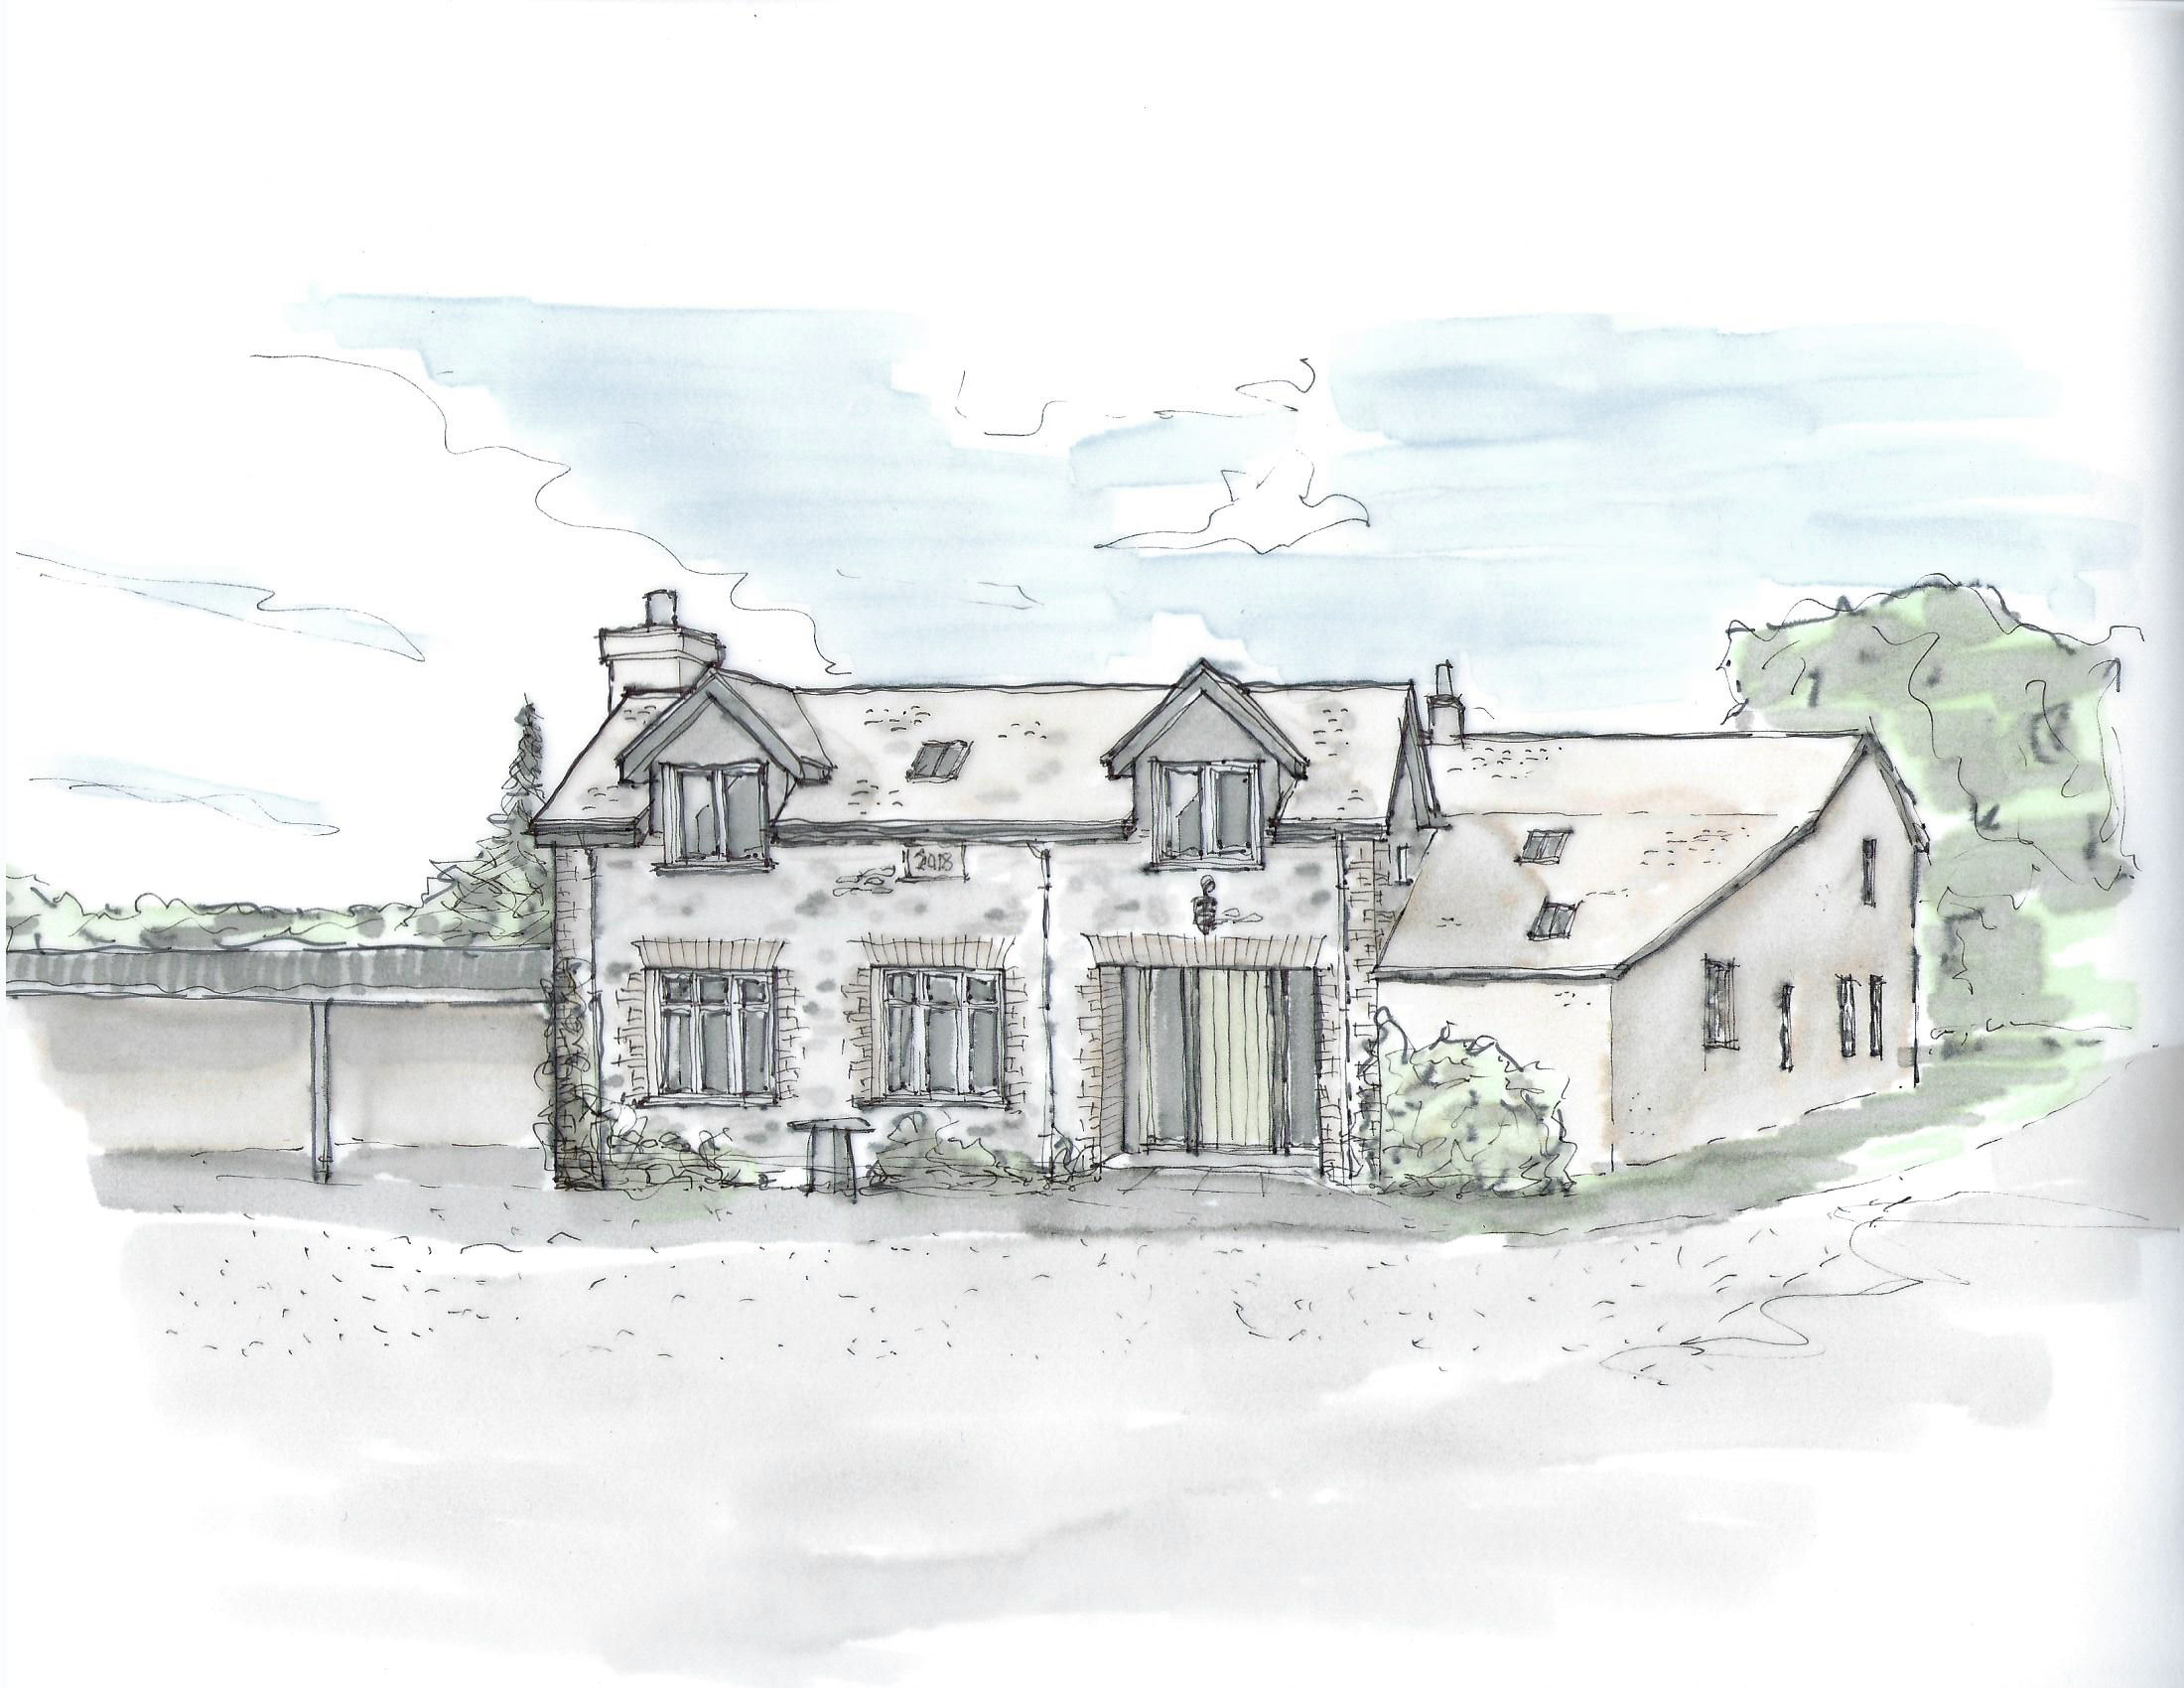 planning-approval-aonb-extension-somerset-home-plans